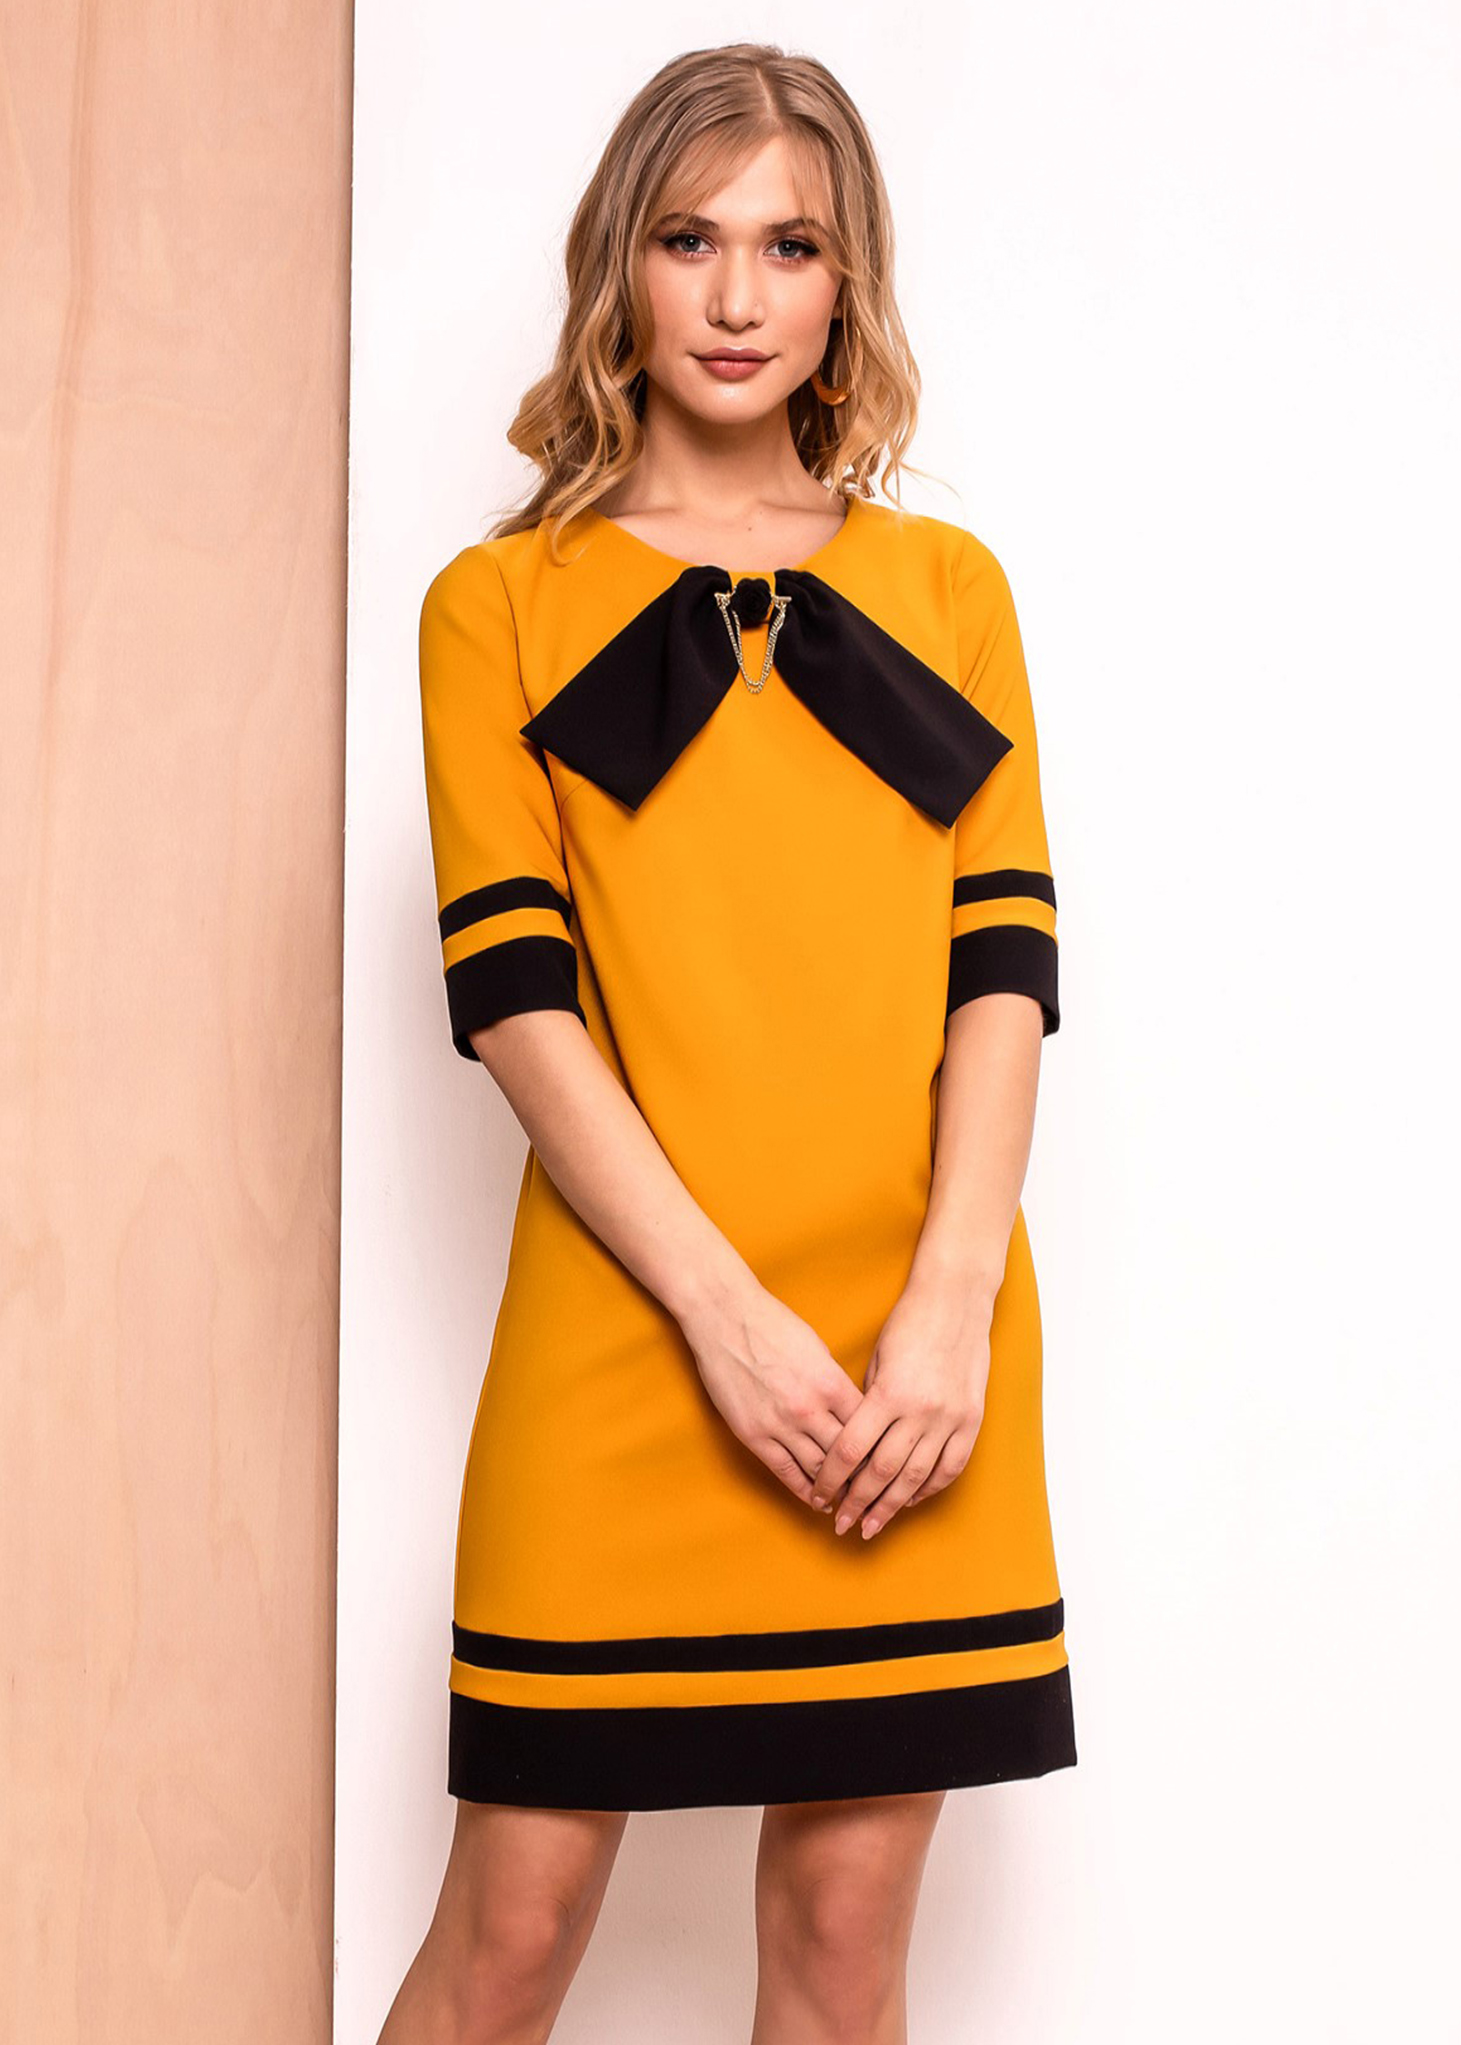 PrettyGirl mustard office a-line dress slightly elastic fabric with inside lining accessorized with breastpin